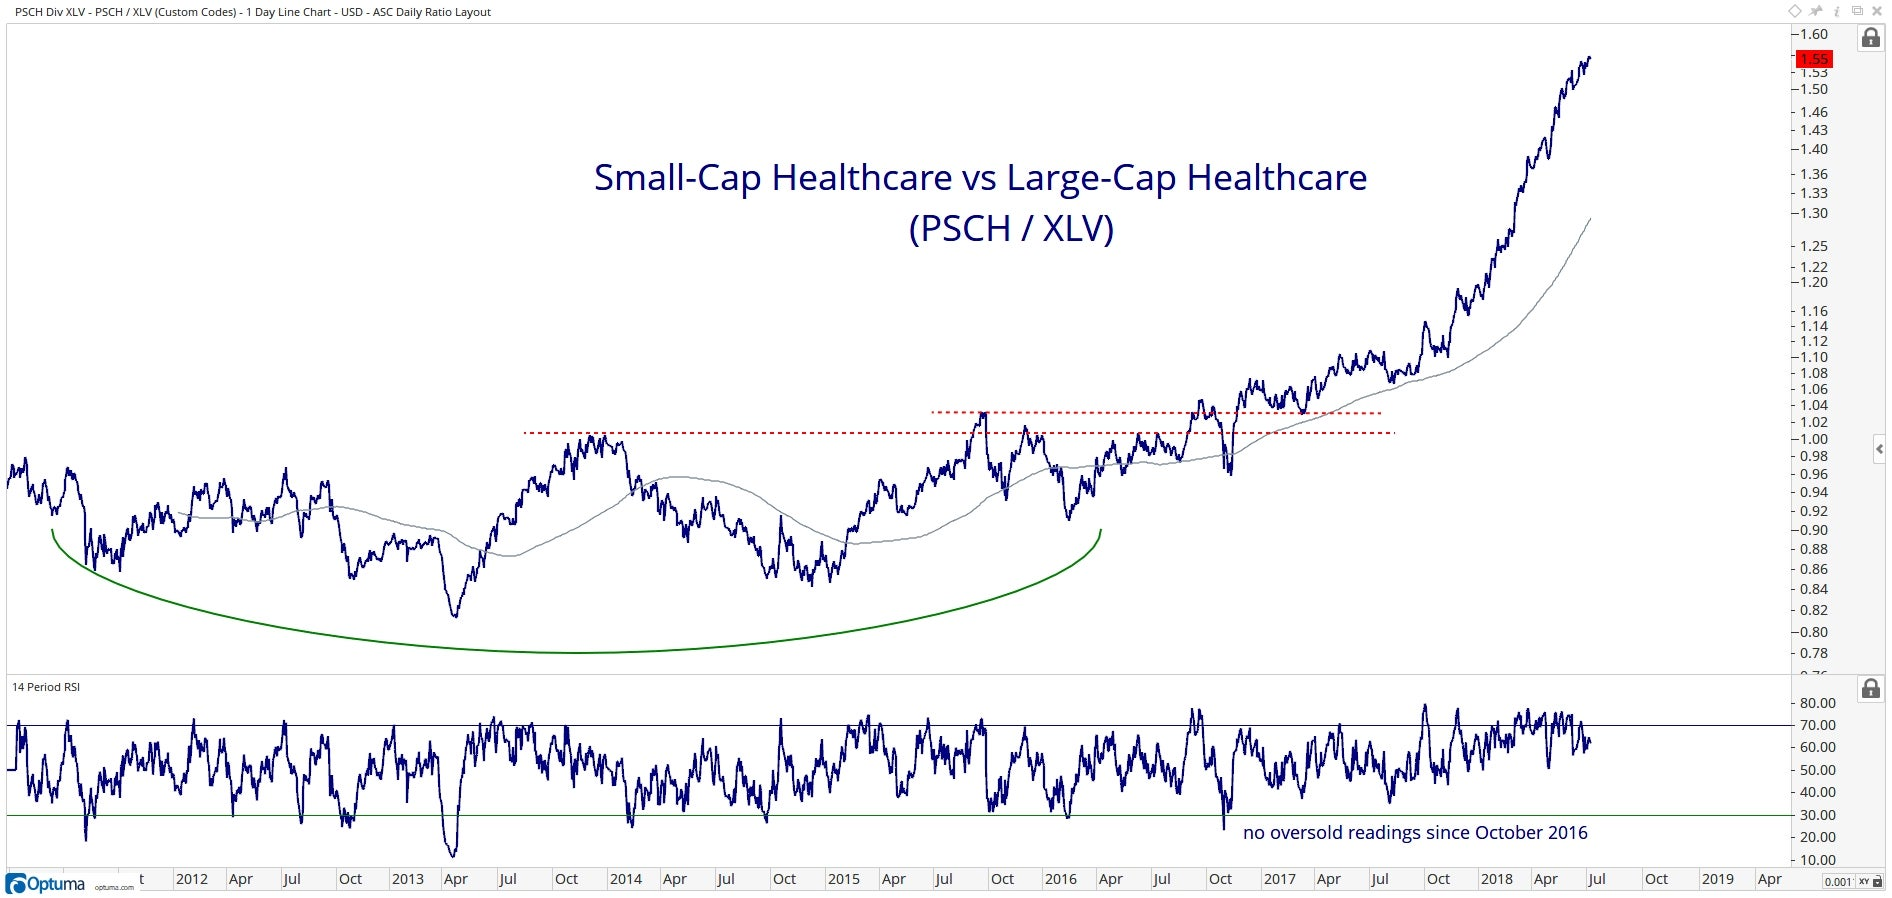 Chart showing performance of Invesco S&P SmallCap Health Care ETF (PSCH) vs. Health Care Select Sector SPDR ETF (XLV)